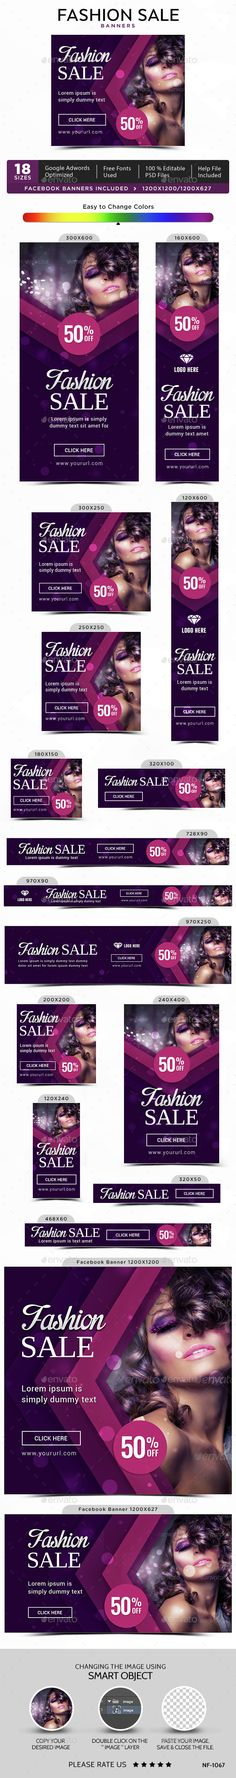 Fashion Sale Web Banners Template PSD. Download here: http://graphicriver.net/item/fashion-sale-banners/14844433?ref=ksioks